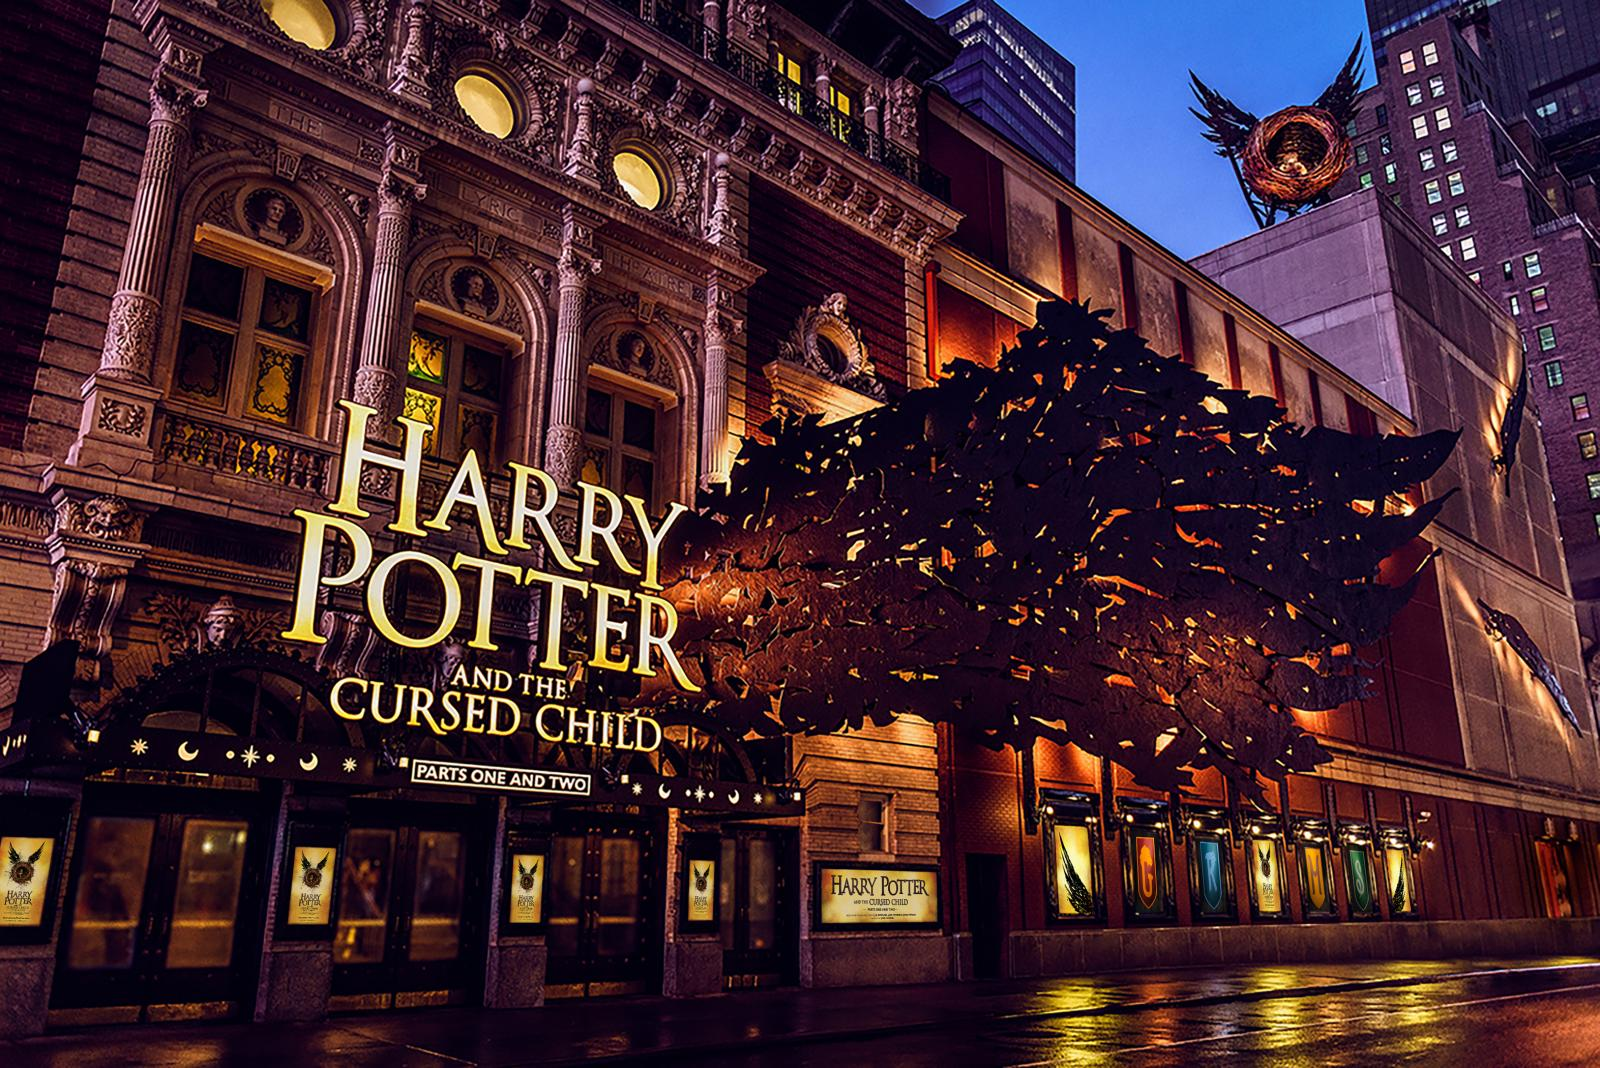 New York's Lyric Theatre Marquee Takes Flight Ahead of the Broadway Premiere of Harry Potter and the Cursed Child Parts One and Two